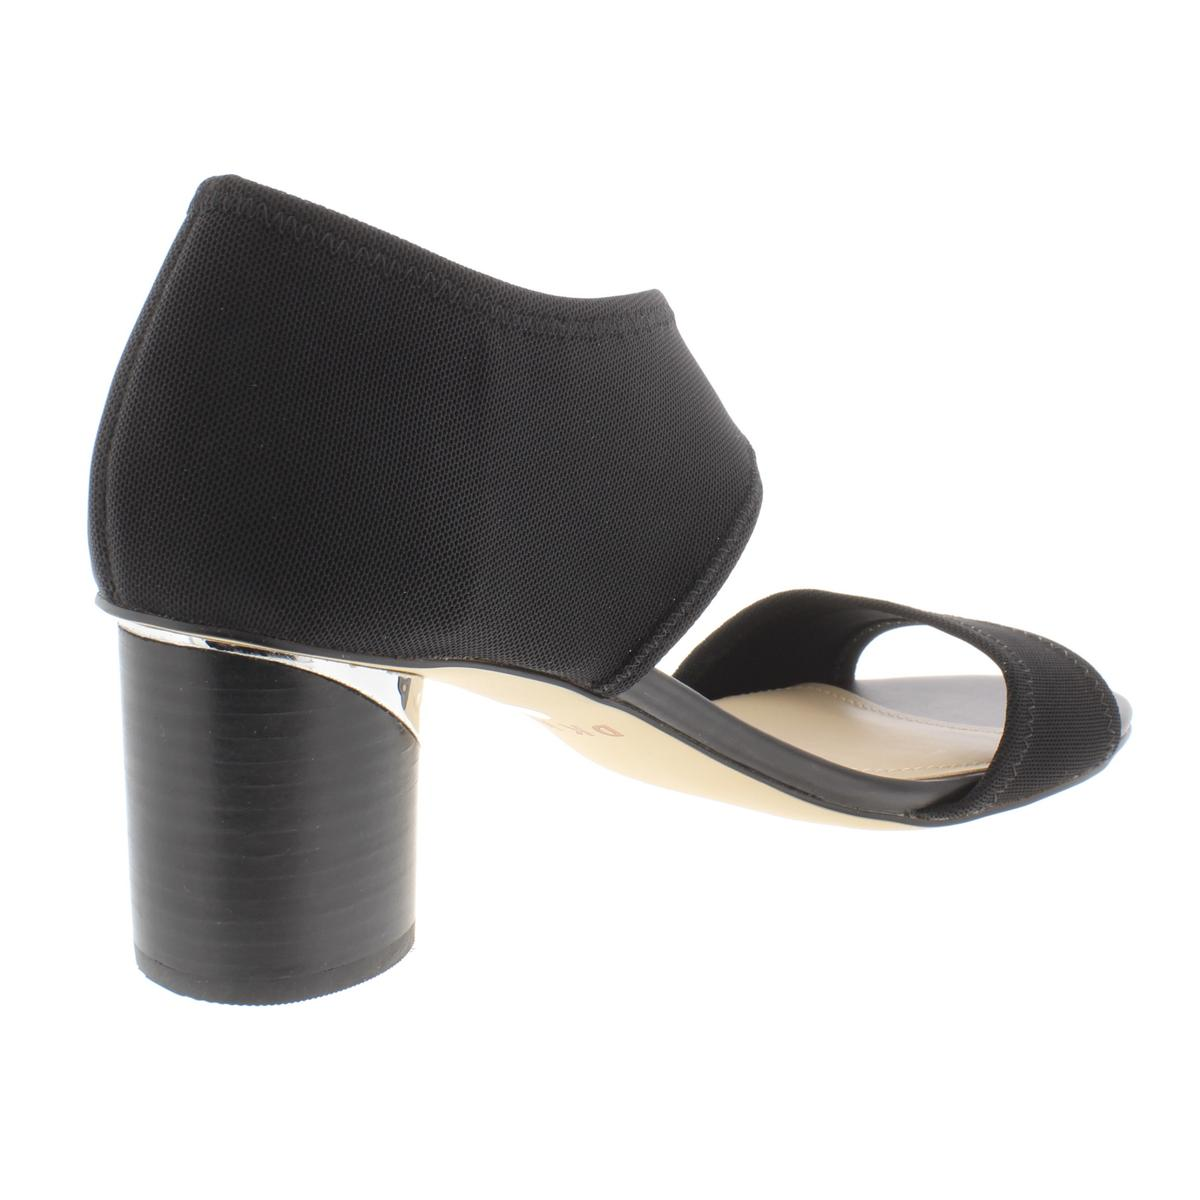 DKNY-Womens-Penny-Ankle-Strap-Cushioned-Dress-Heels-Sandals-BHFO-8083 thumbnail 4